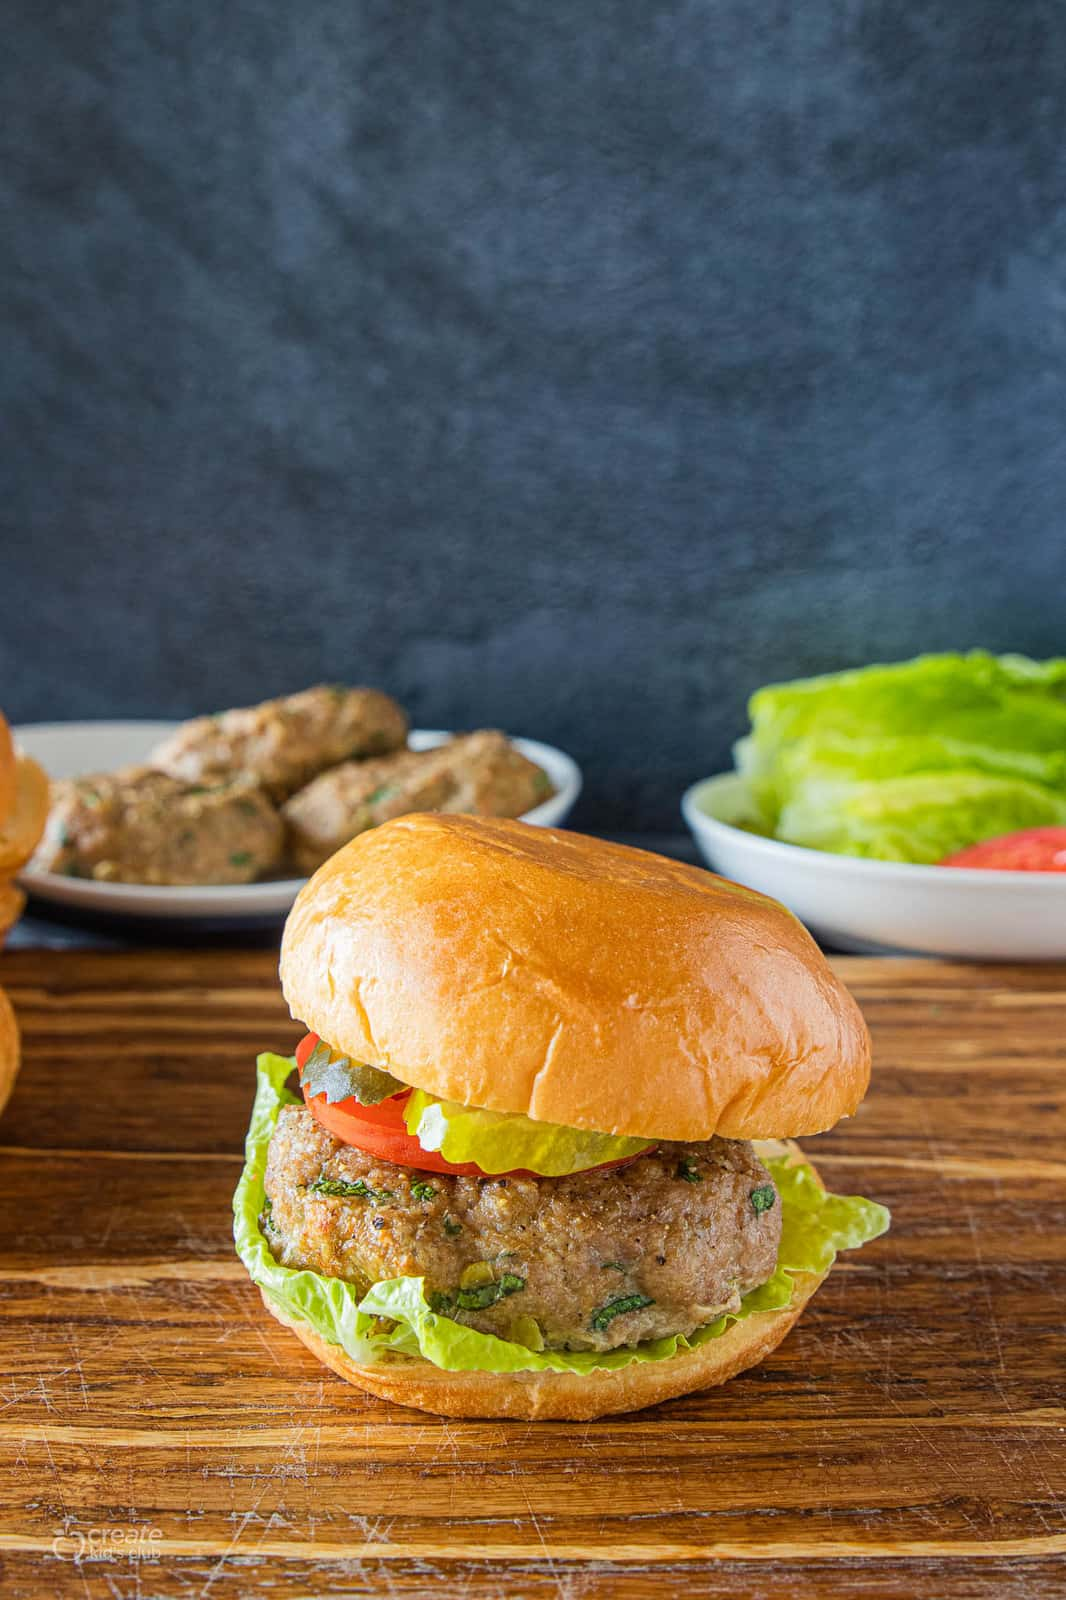 turkey burger with a bun and burger toppings